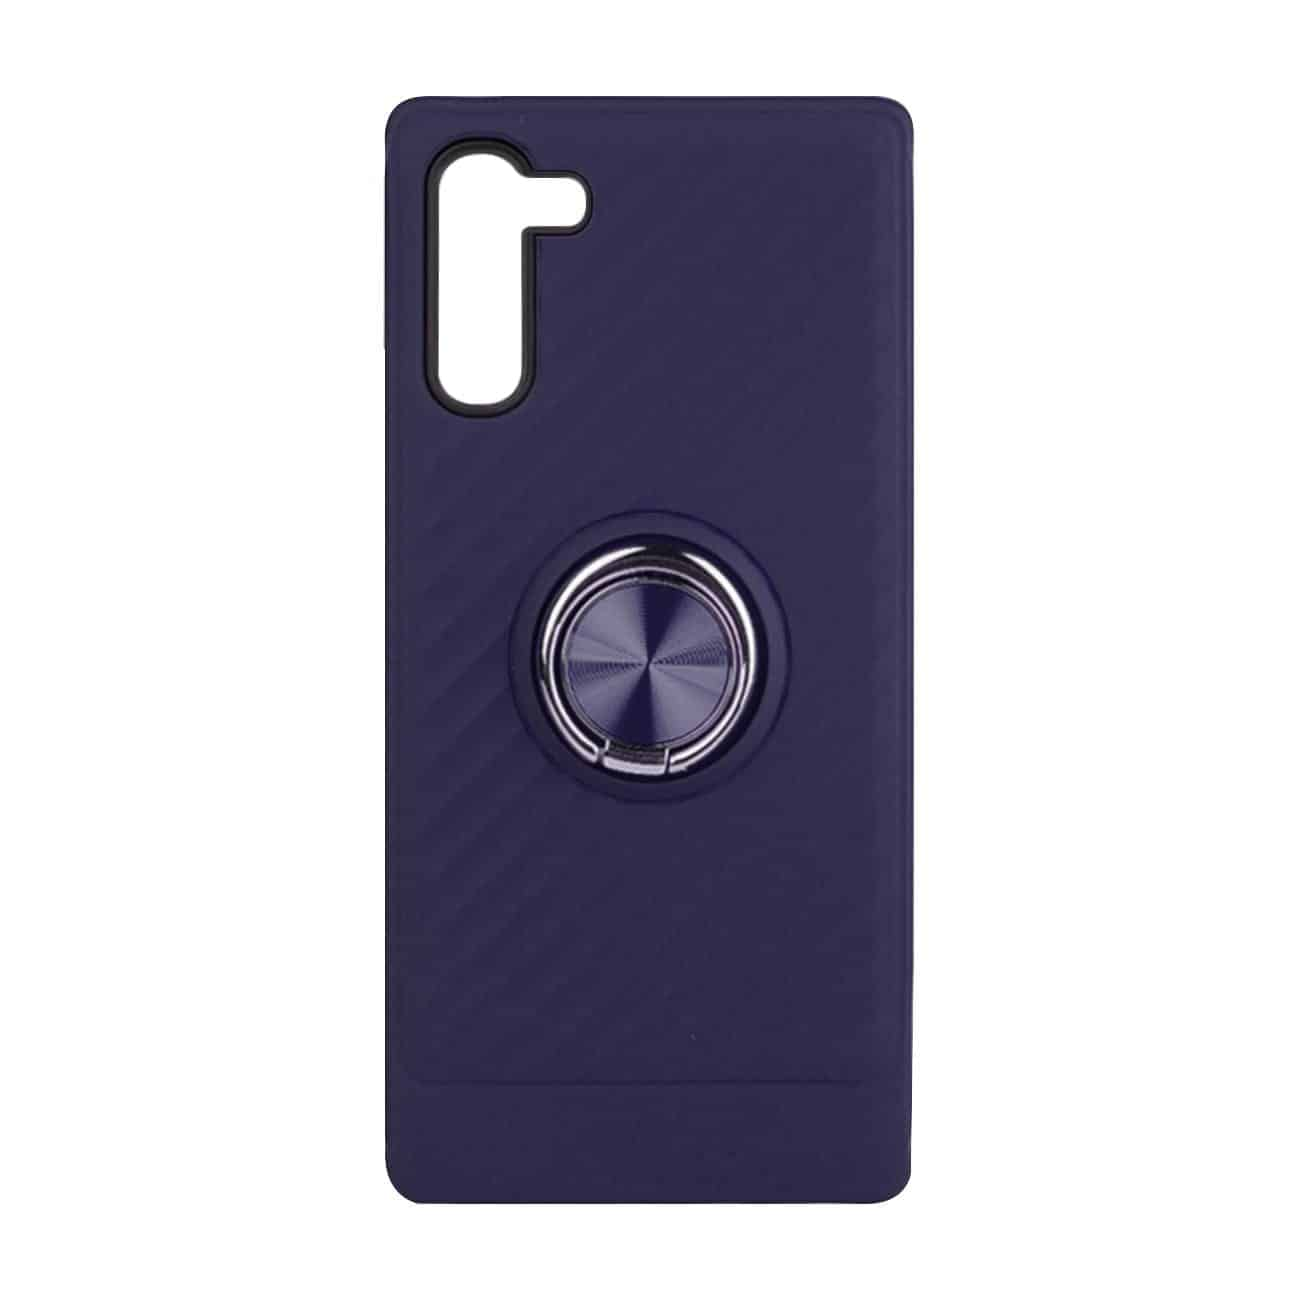 SAMSUNG GALAXY NOTE 10 Case with Ring Holder InBlue